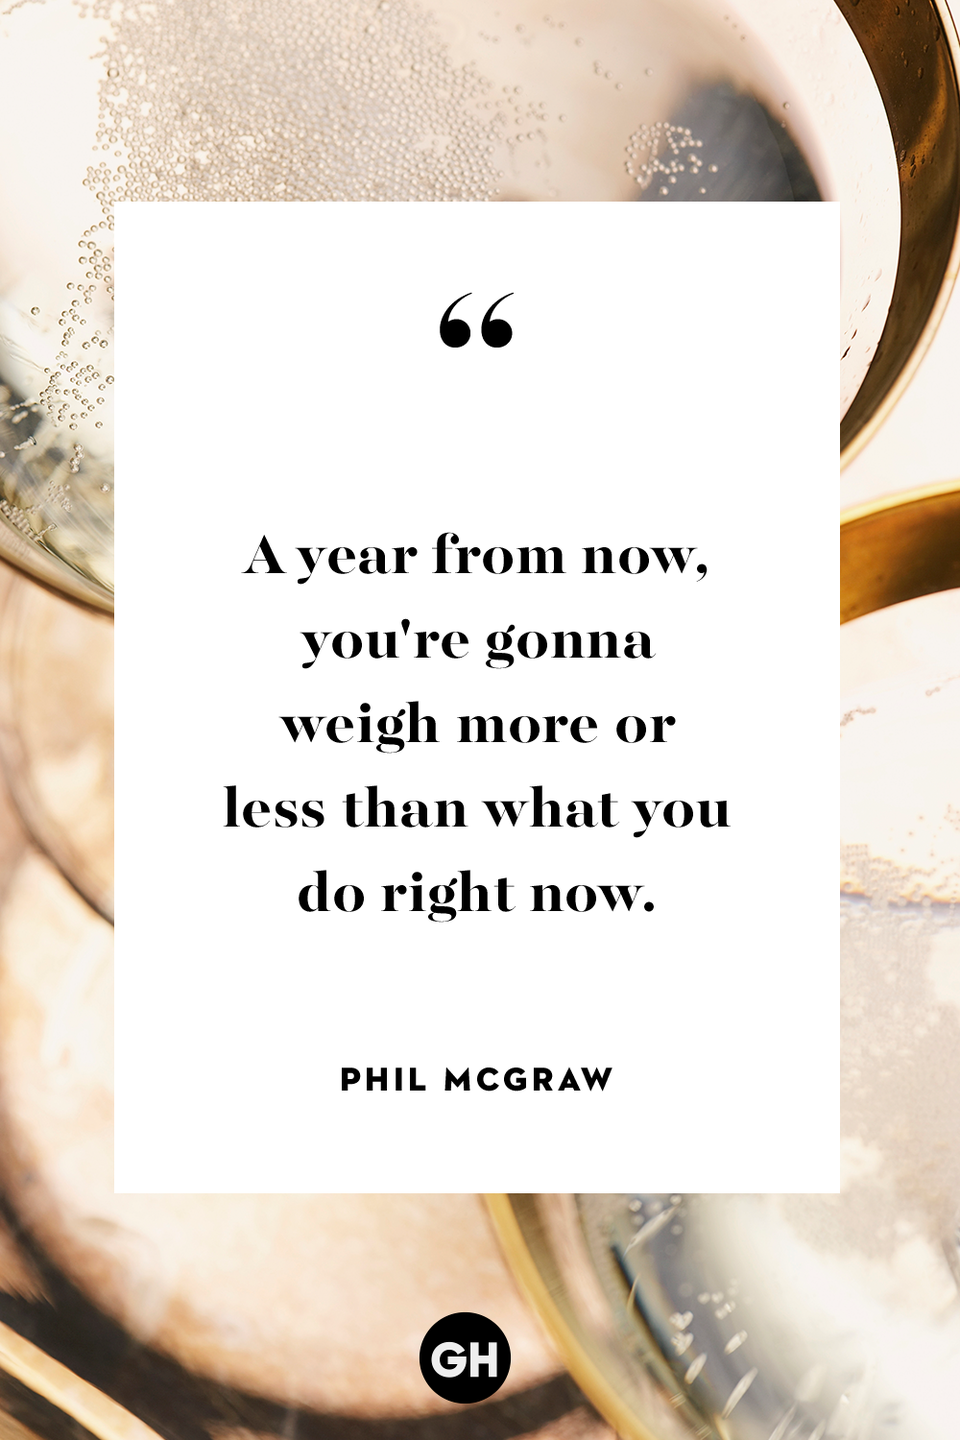 <p>A year from now, you're gonna weigh more or less than what you do right now.</p>